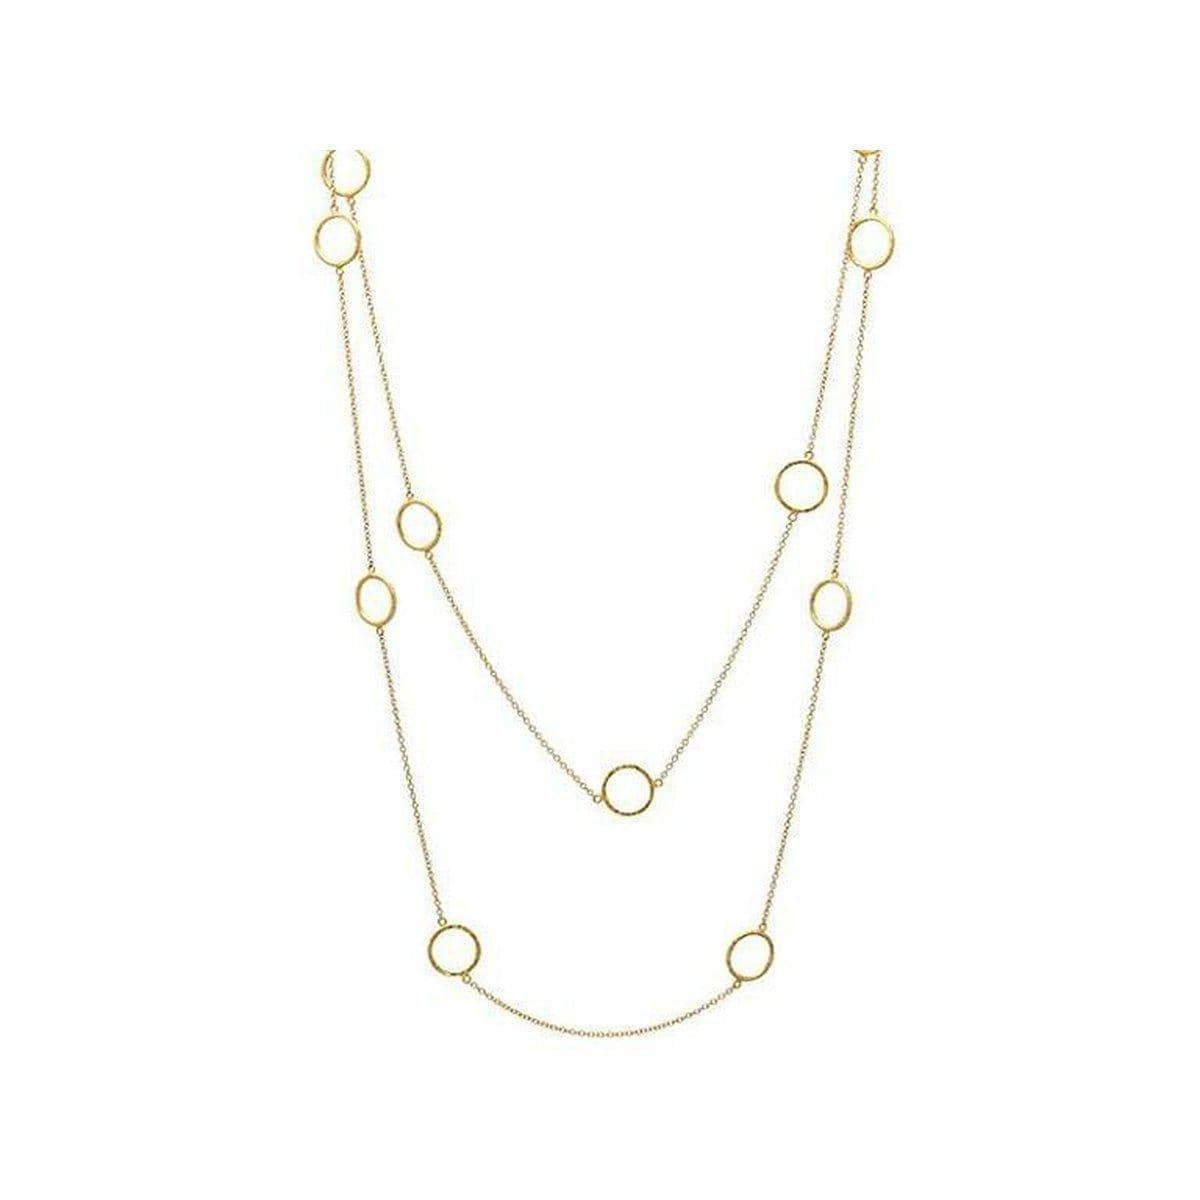 Delicate 22K Gold Necklace - CHN-GPL-11RD14-LST40-GURHAN-Renee Taylor Gallery